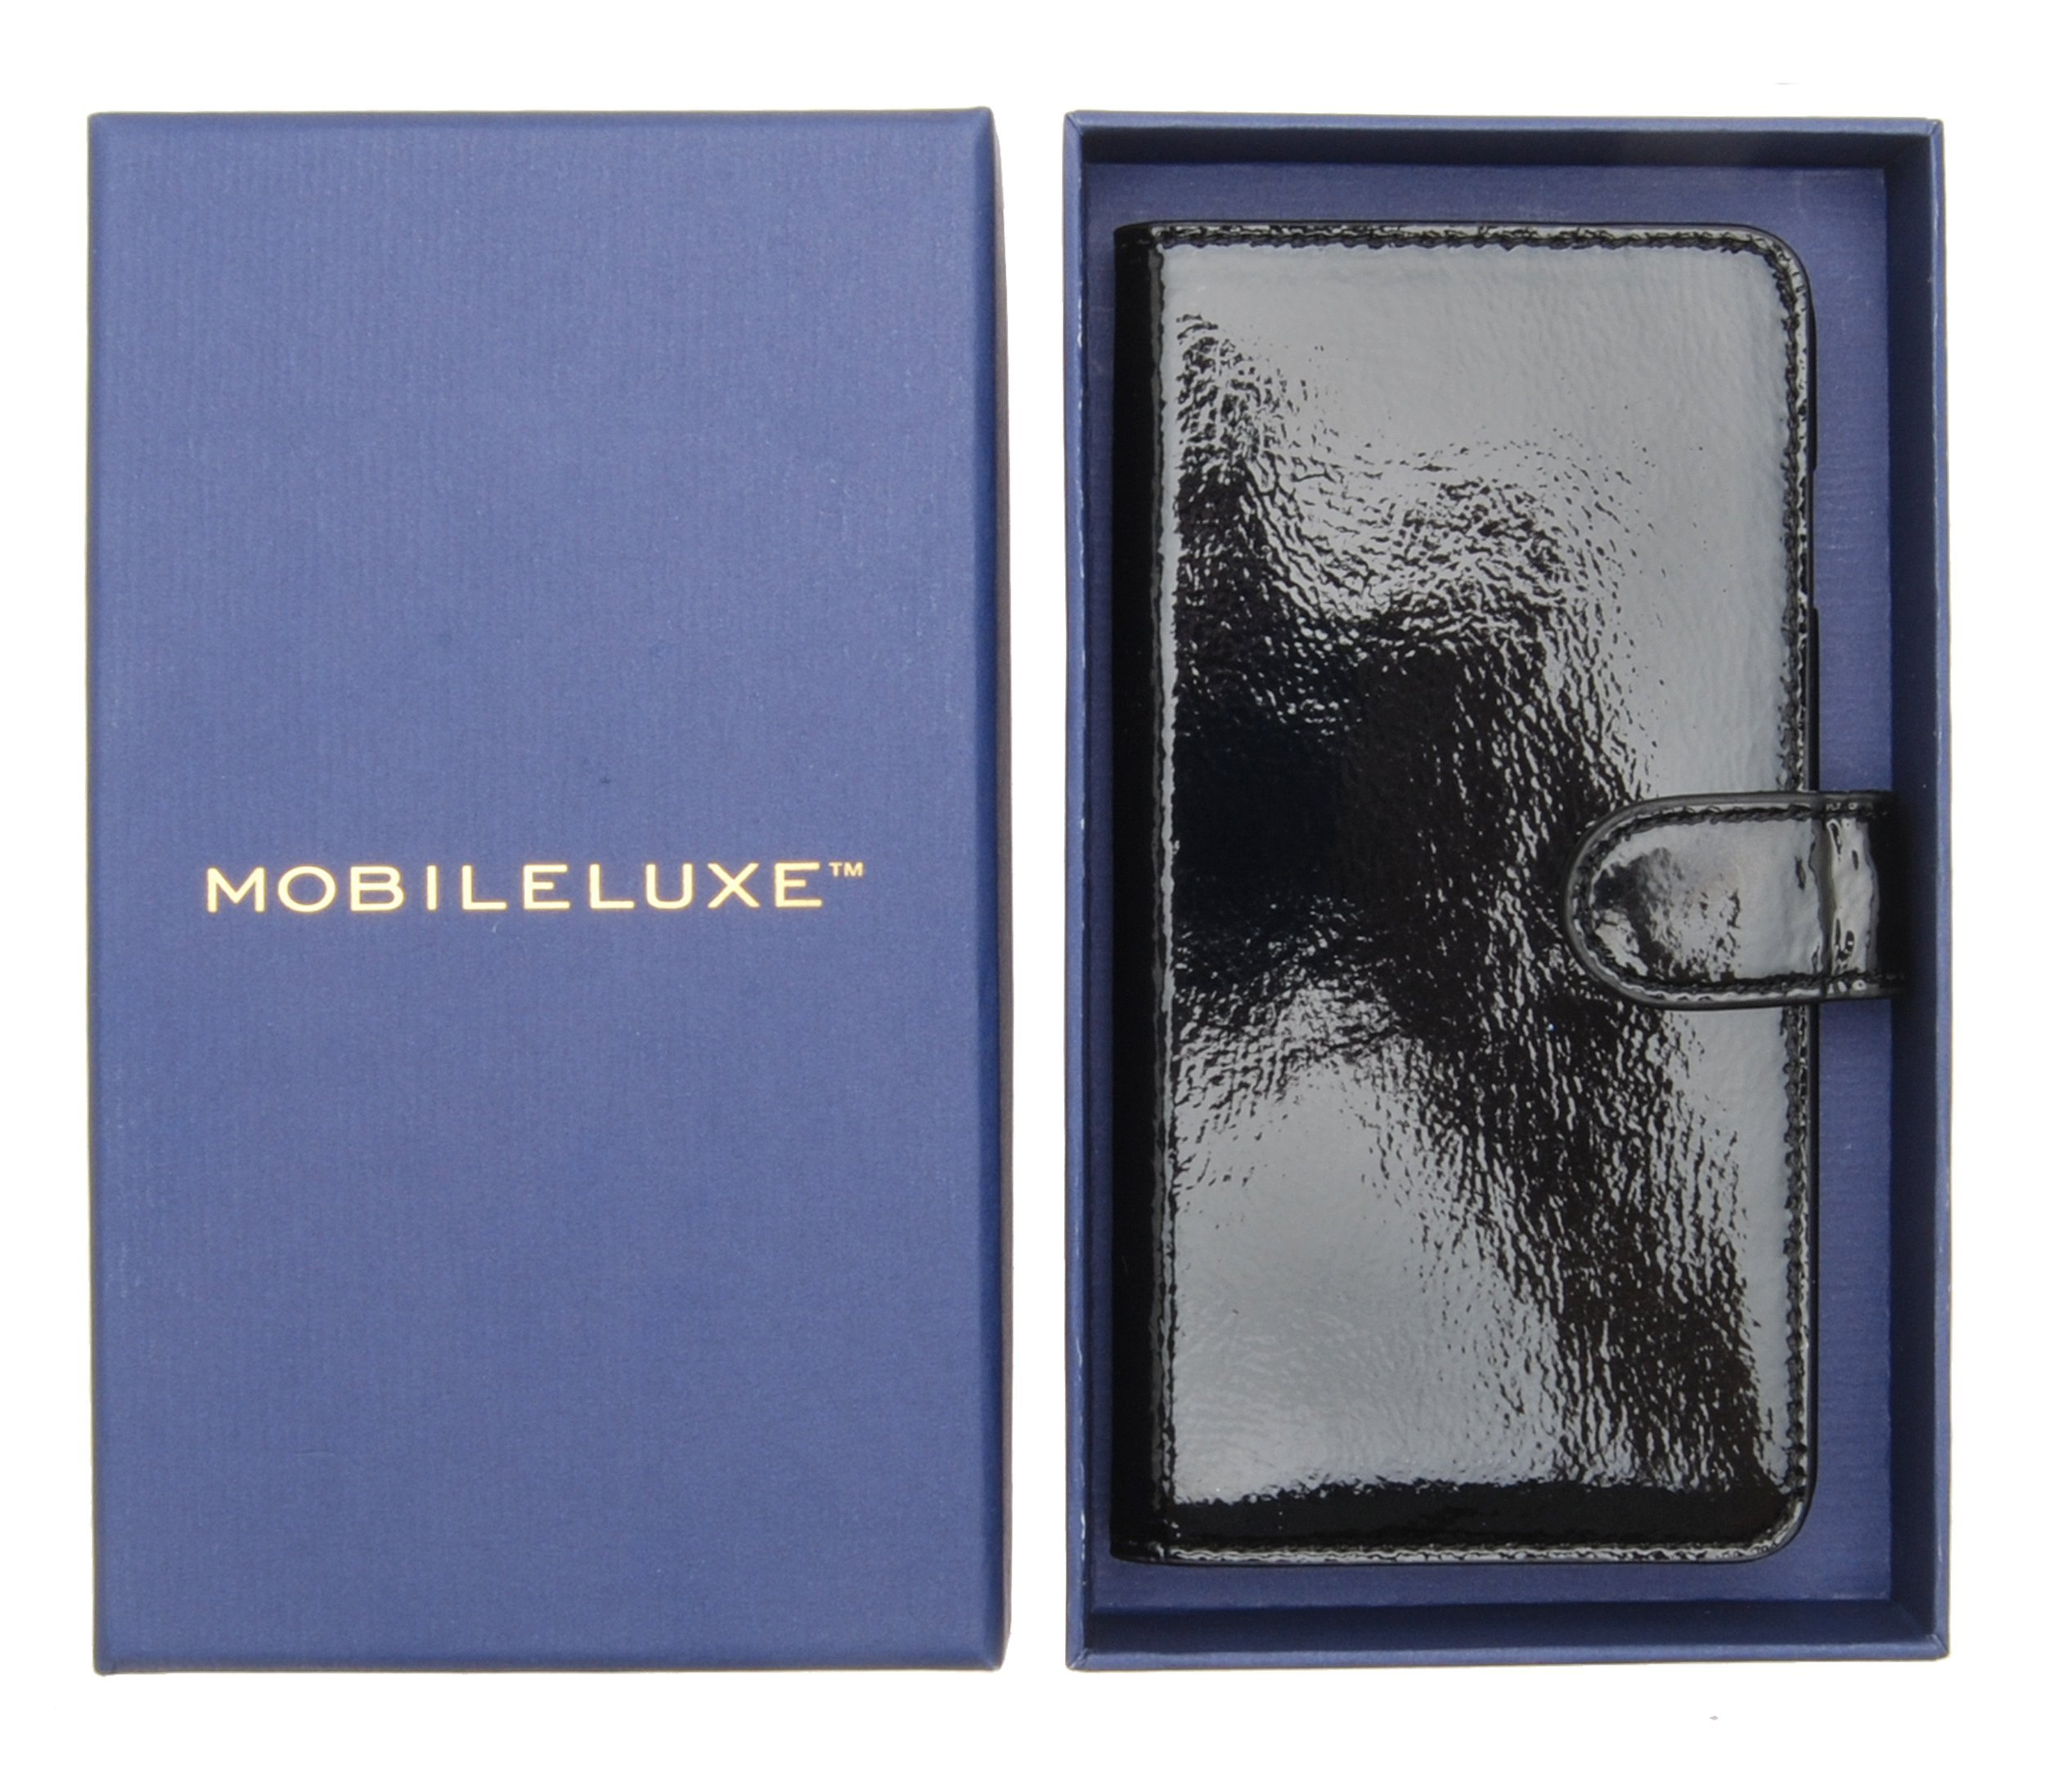 MOBILELUXE Patent Leather Wallet Phone Case for iPhone 6 Plus & 6s Plus - Patent Black/Fuchsia by MOBILELUXE (Image #6)